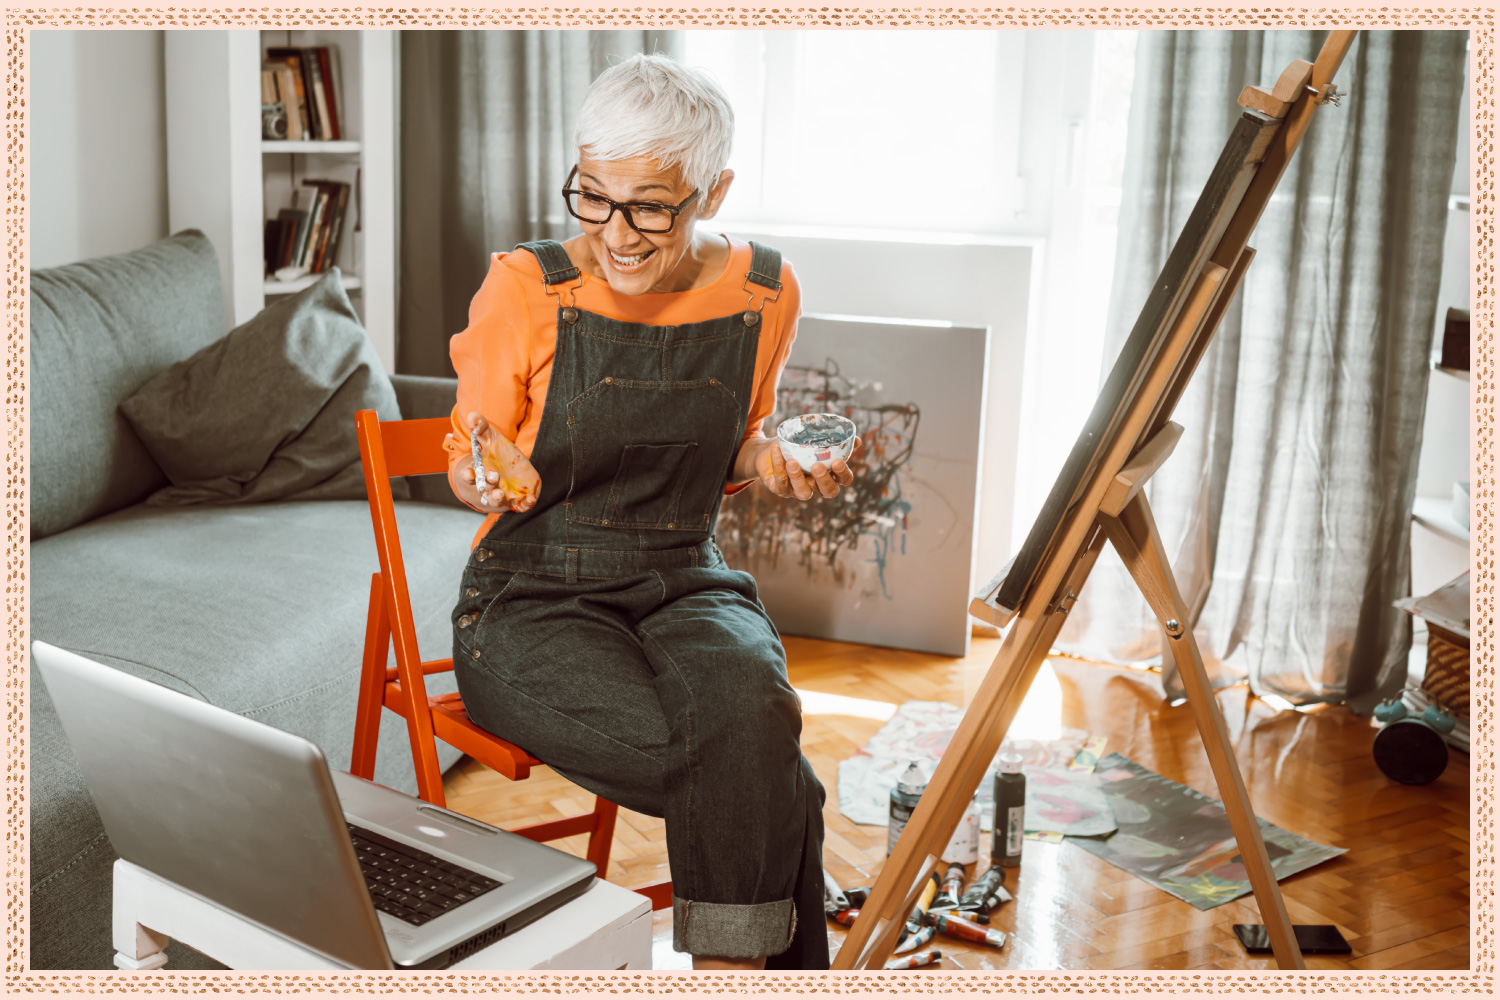 older woman painting a canvas on an easel while videochatting someone with laptop